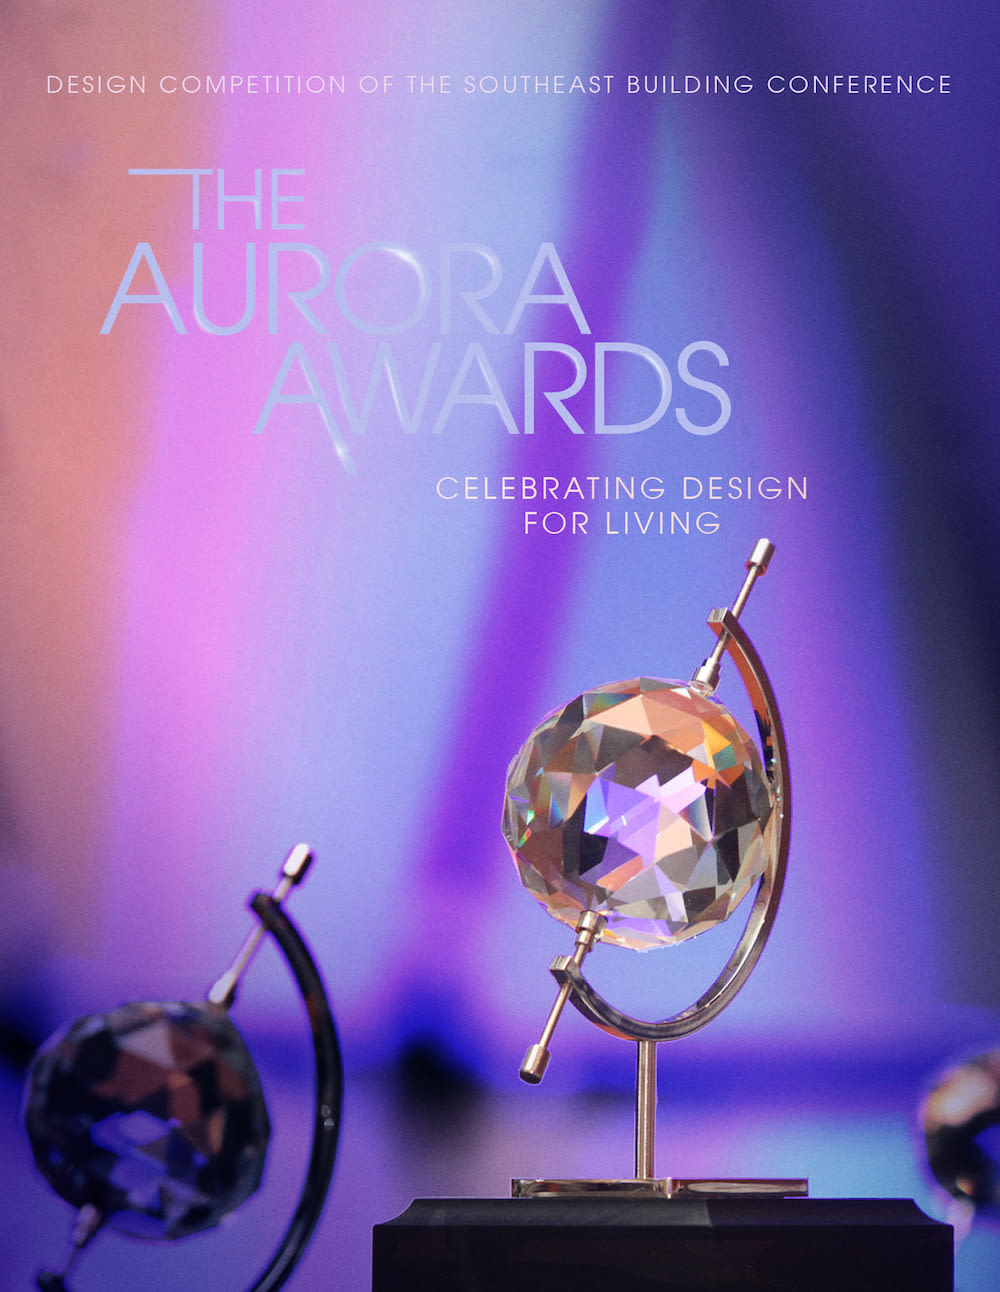 The Aurora Awards